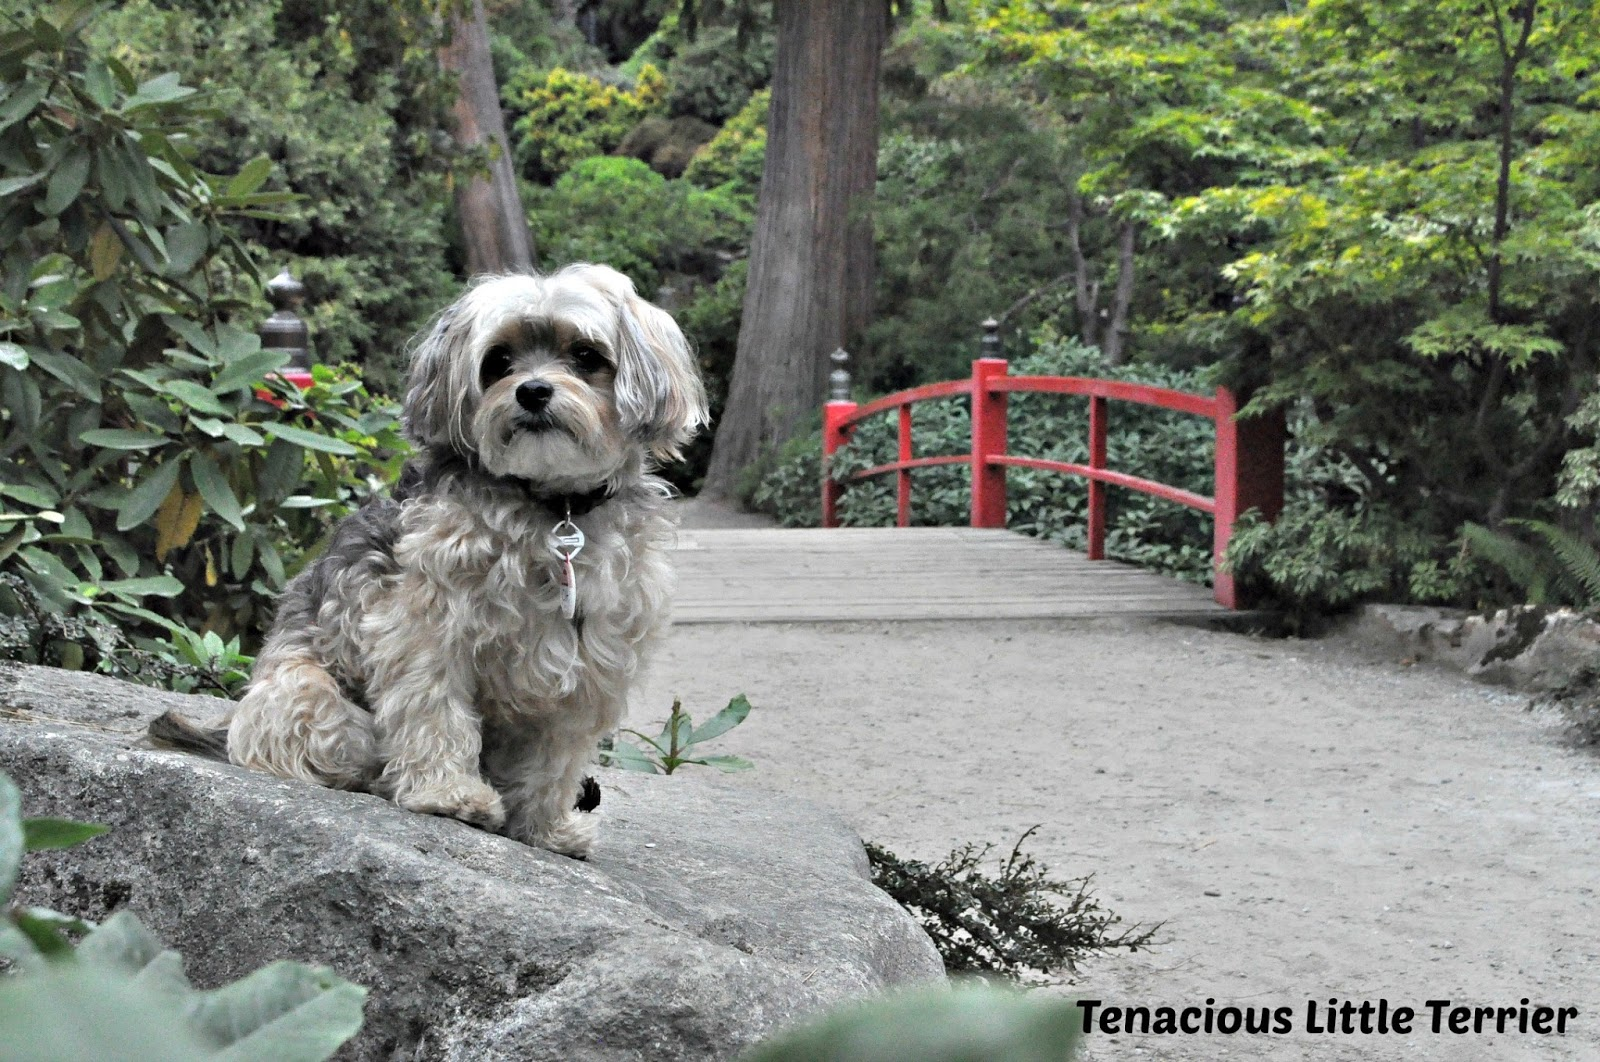 however the kubota garden in seattle allows dogs as long as they are leashed and you clean up after them it is also open year round during daylight hours - Kubota Garden